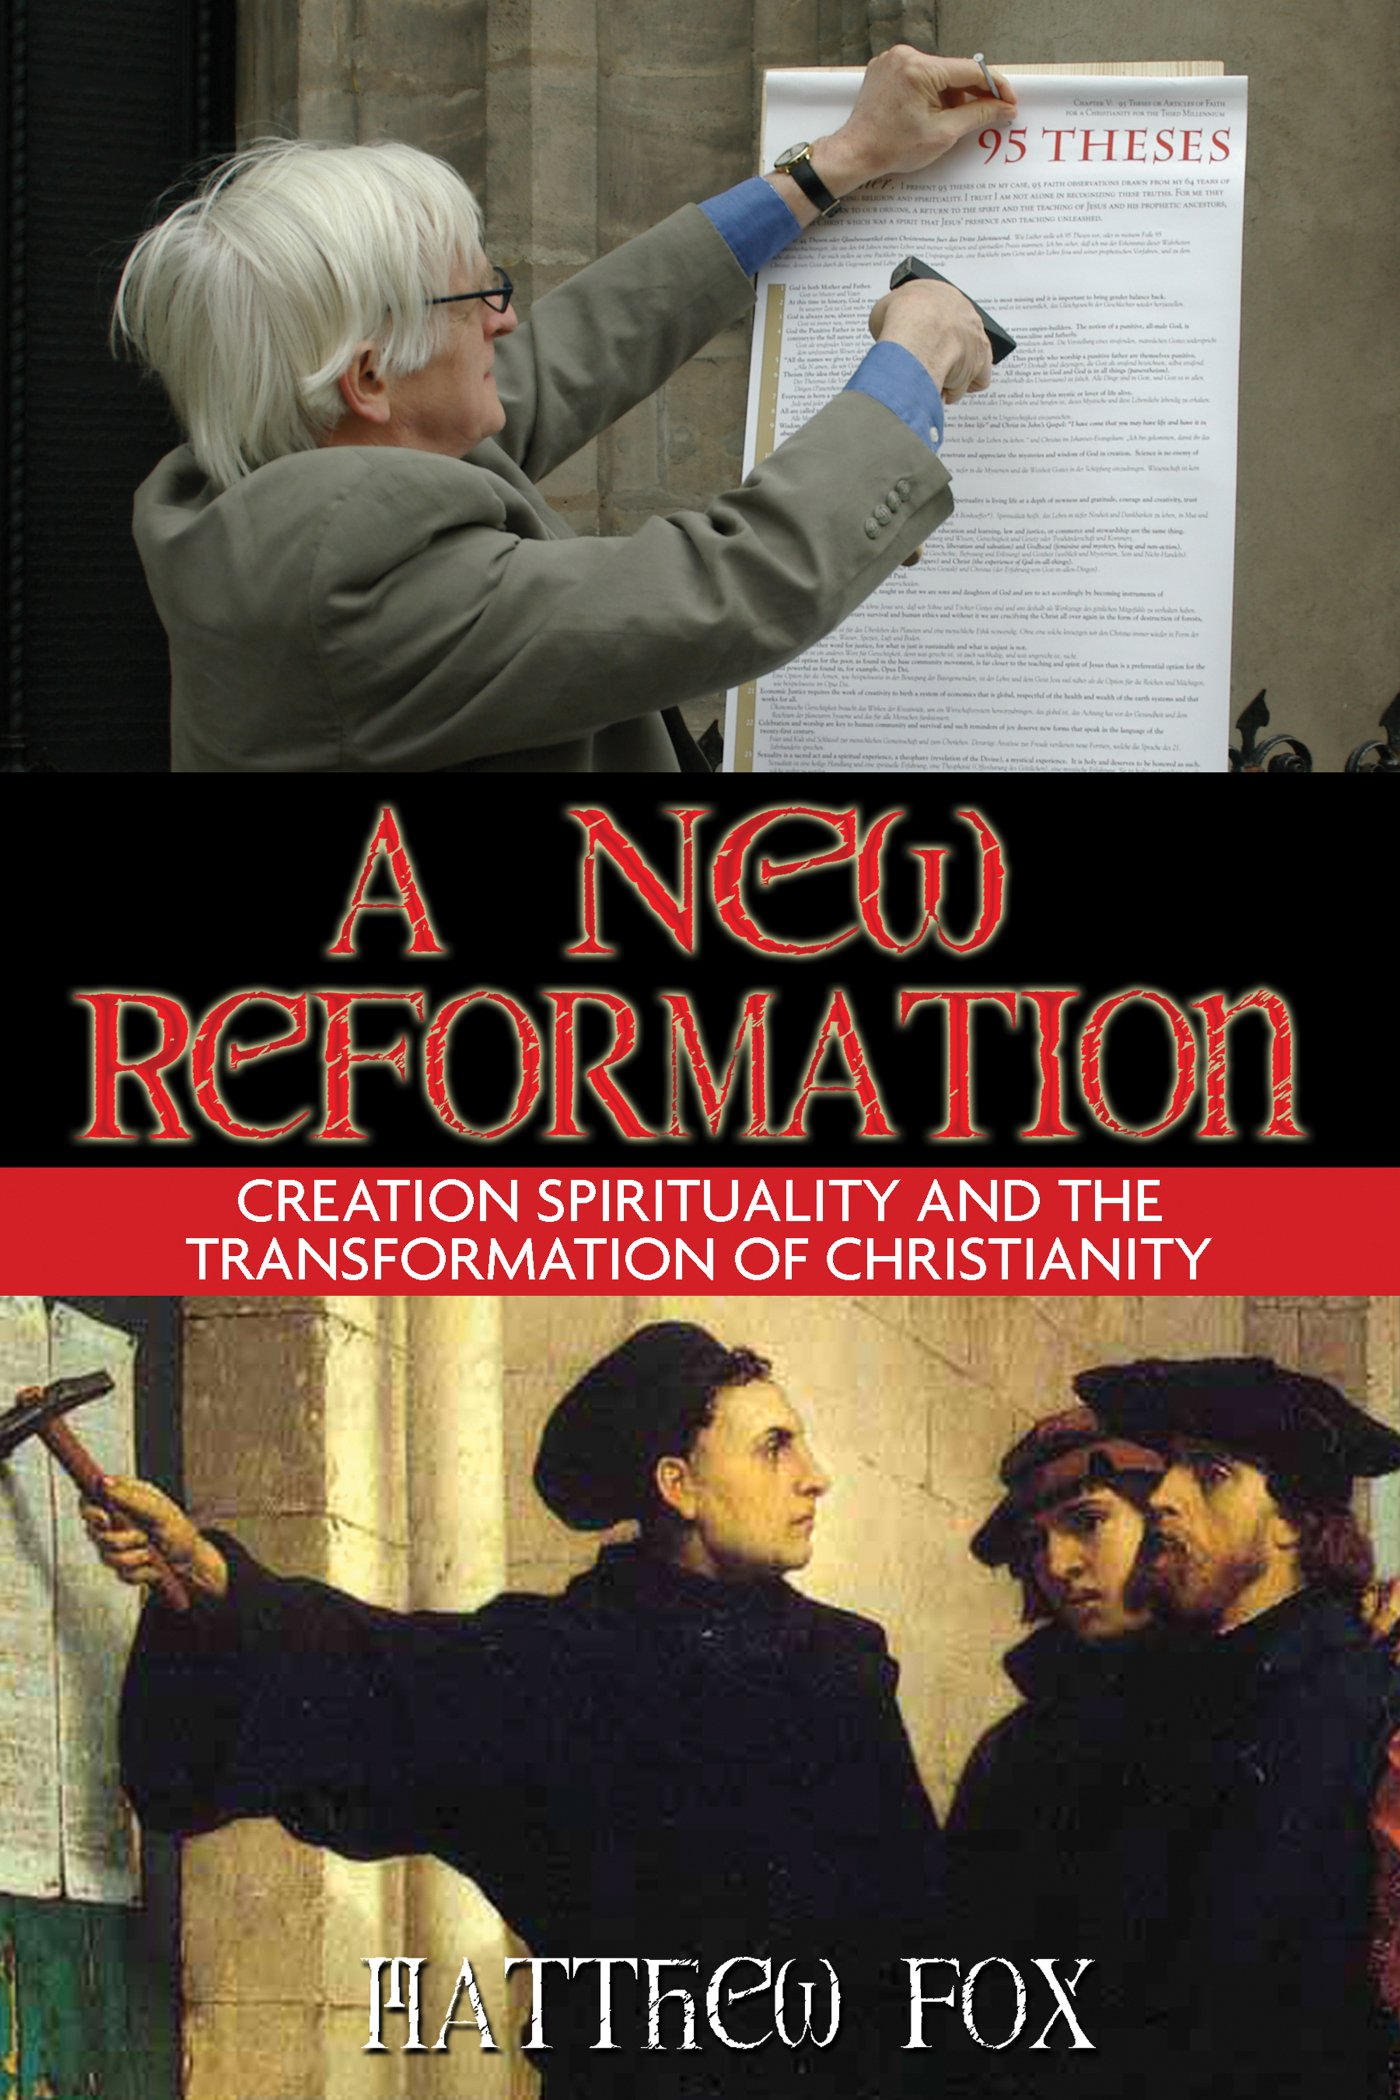 A New Reformation: Creation Spirituality And The Transformation Of  Christianity: Matthew Fox: 9781594771231: Amazon: Books